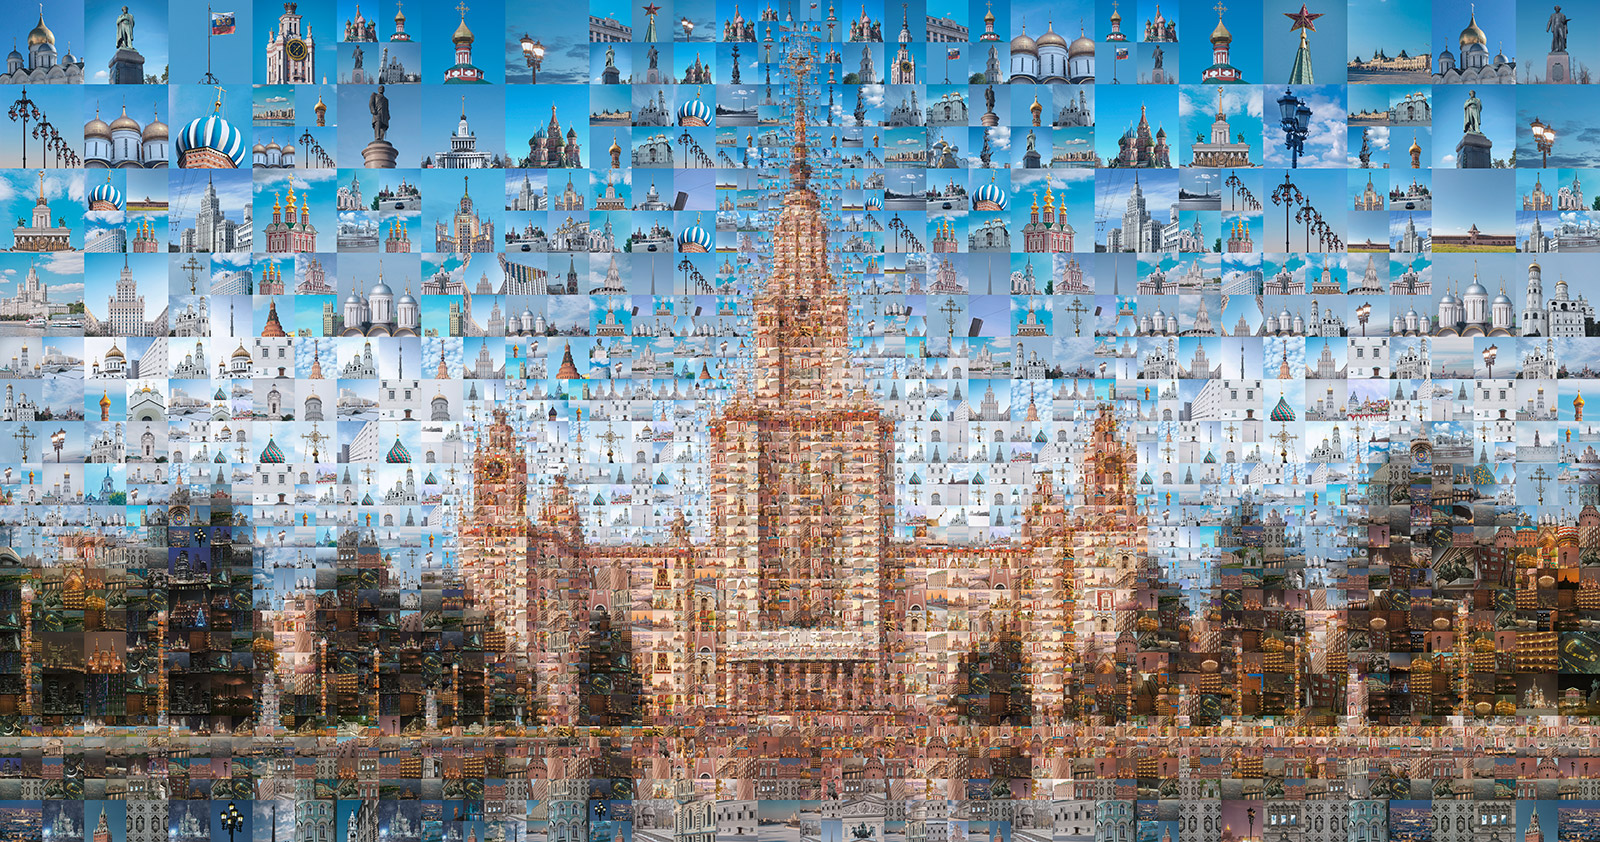 Our Moscow by Charis Tsevis